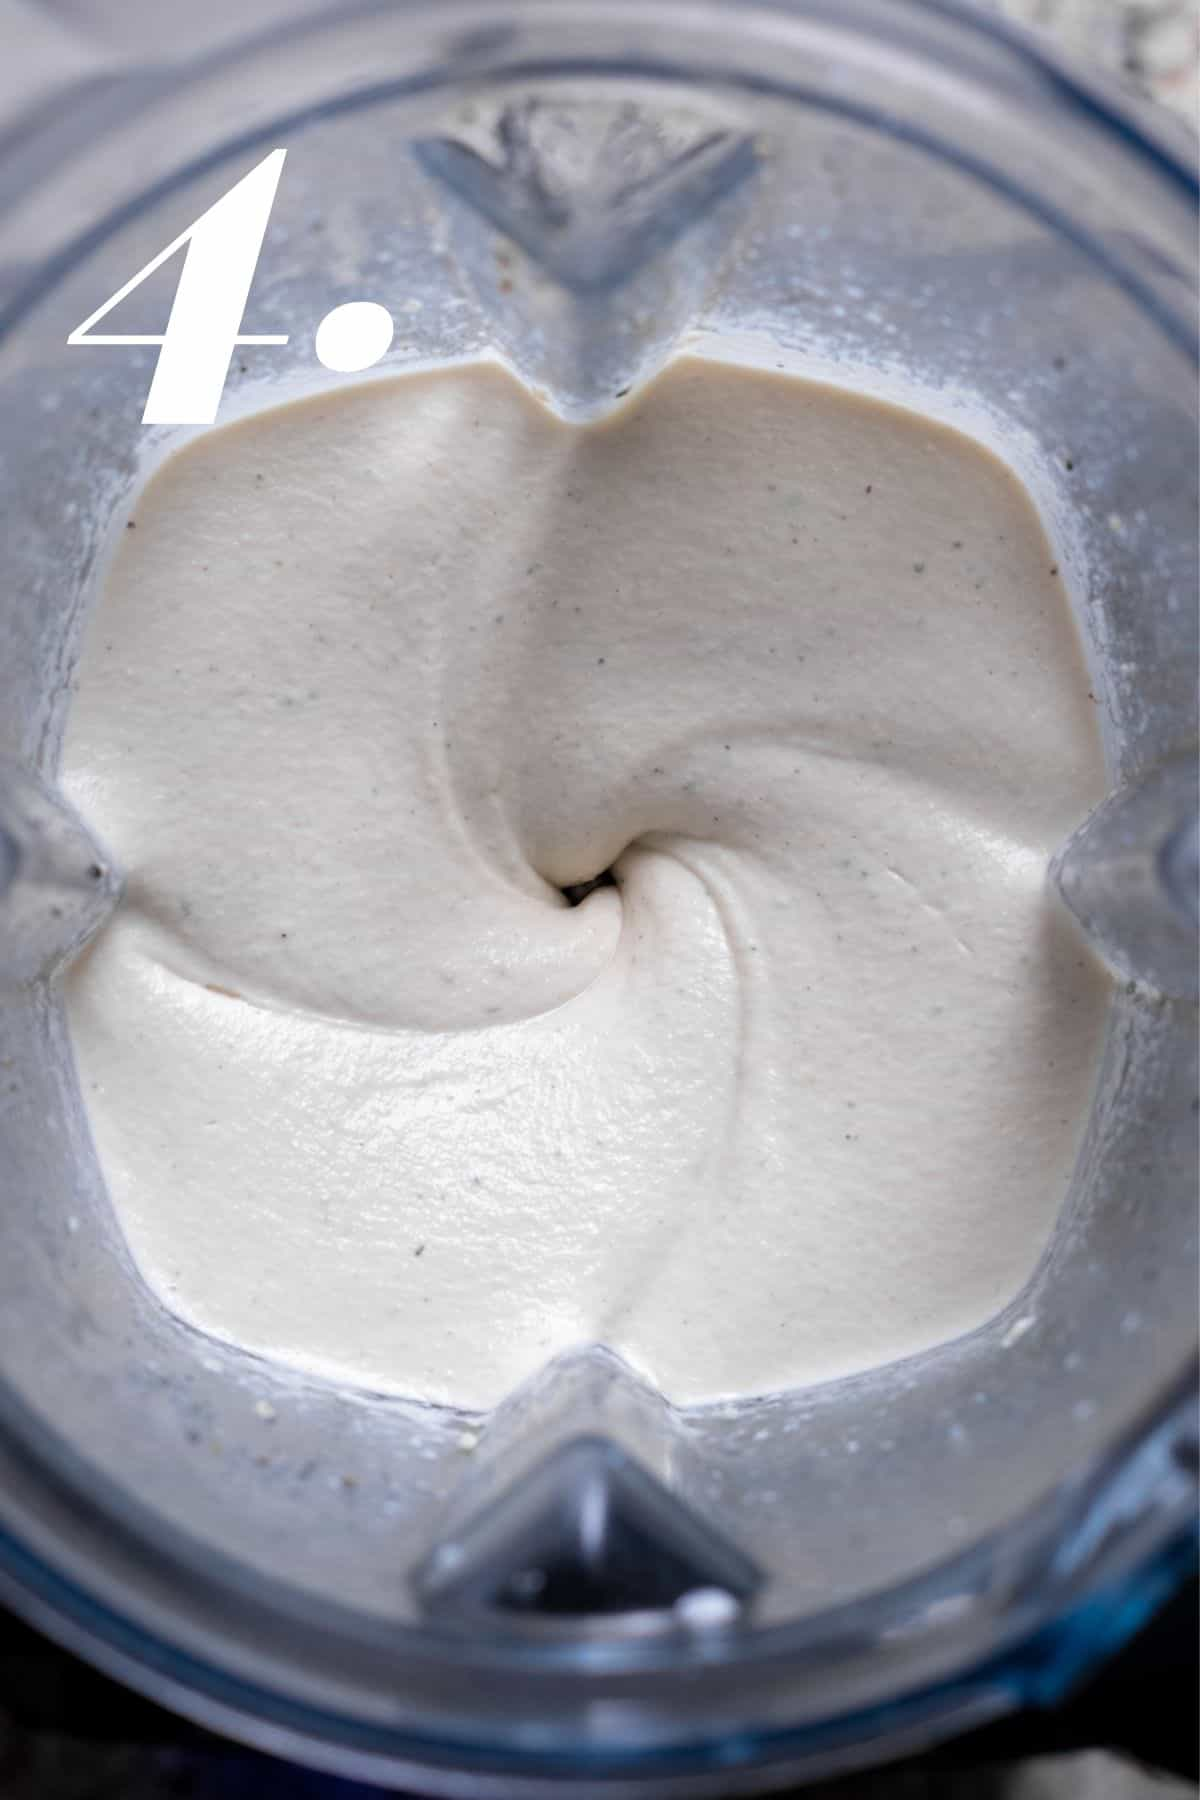 Cashew sour cream after blending for 2 minutes.